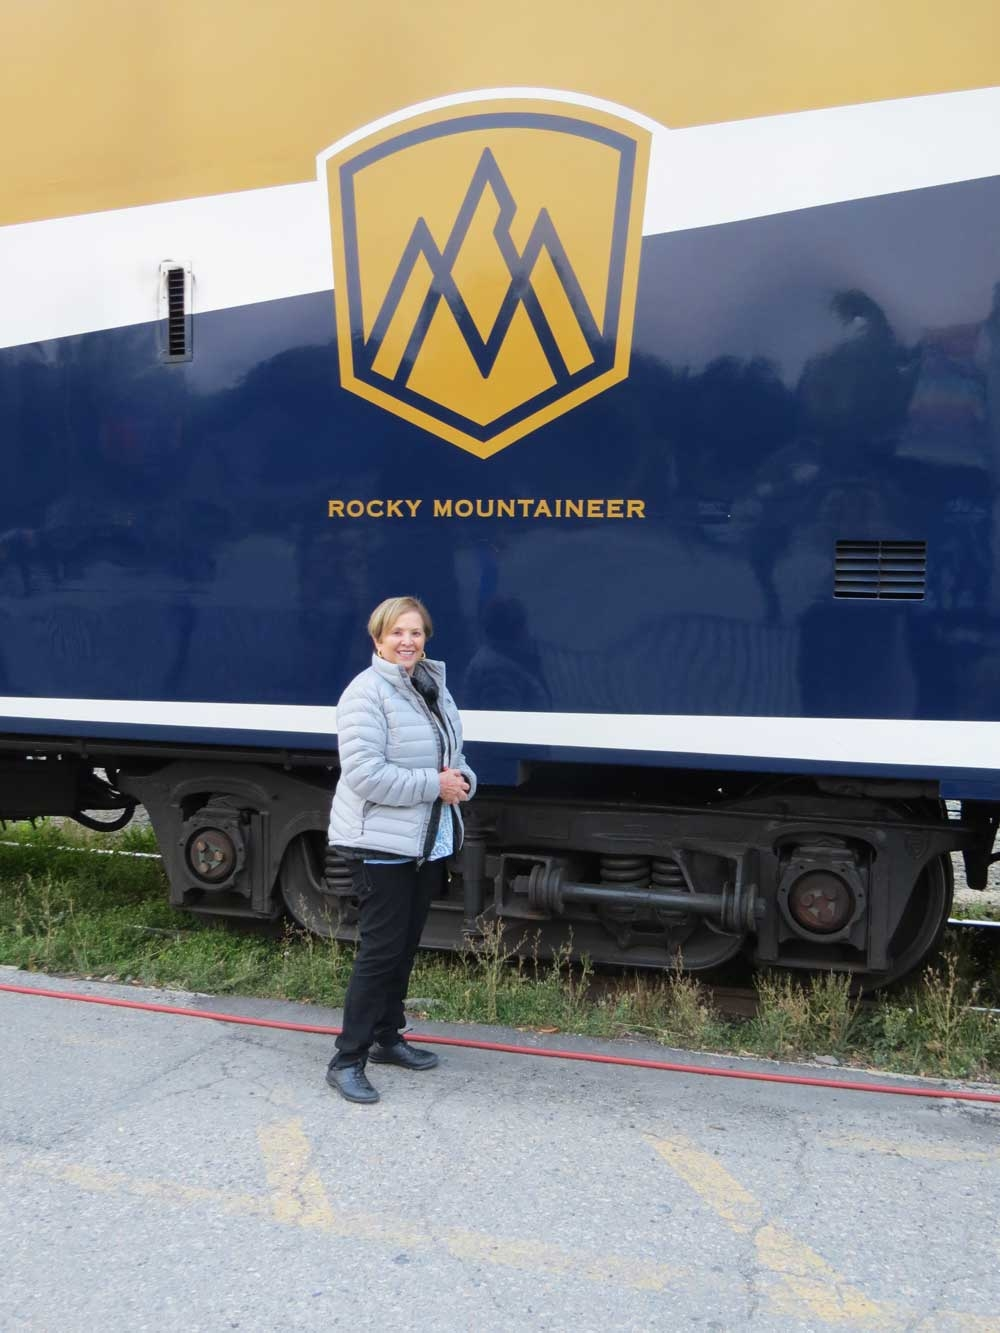 Western Canada With Rocky Mountaineer